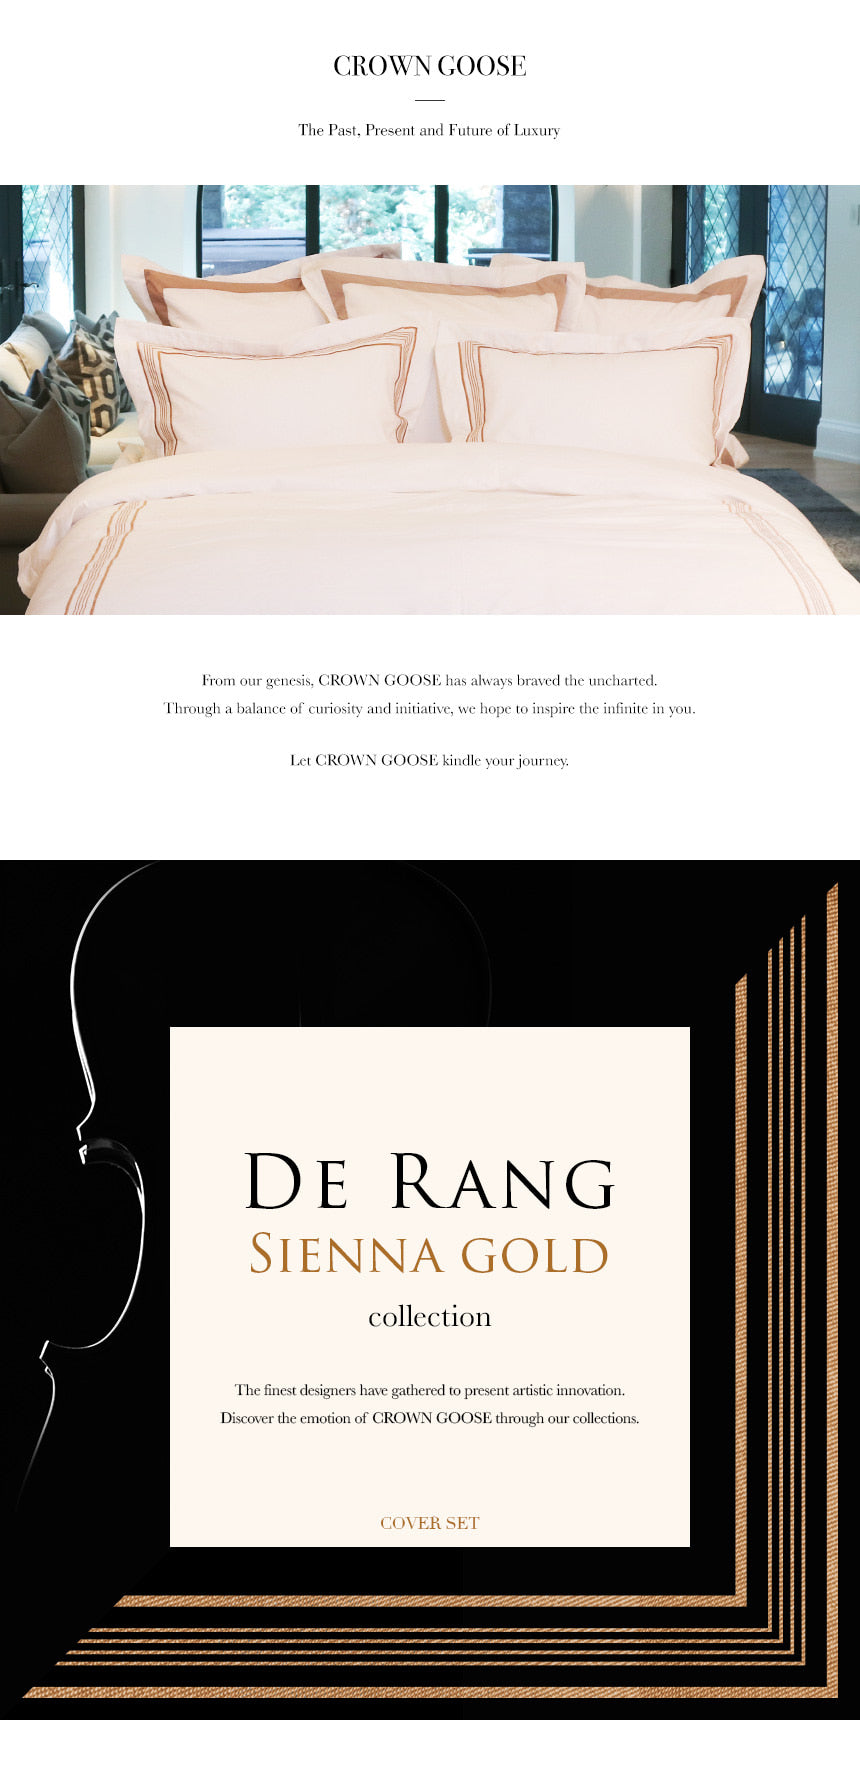 Duvet Cover Set De Rang Collection, Sienna Gold